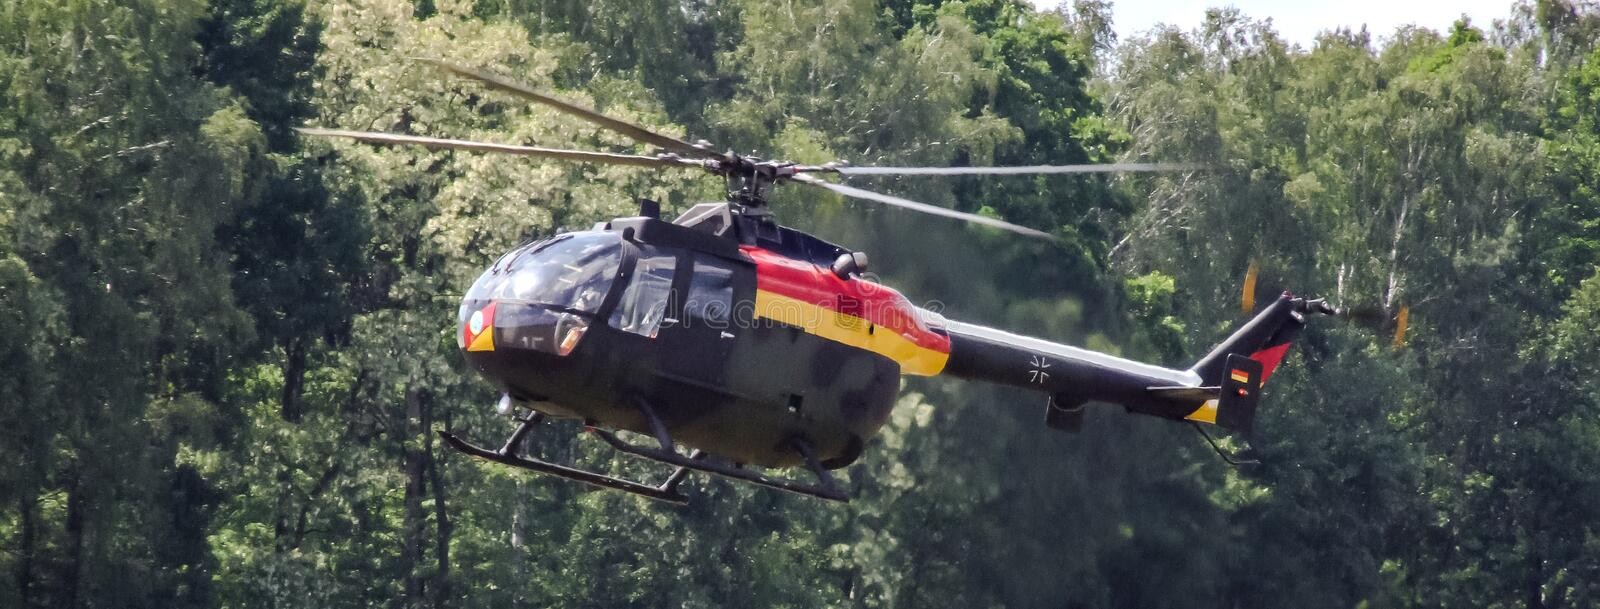 Eurocopter MBB Bo-105 of German Air Force display in Goraszka in Poland. Eurocopter MBB Bo-105 of German Air Force during display in Goraszka Air Show 2008 royalty free stock images